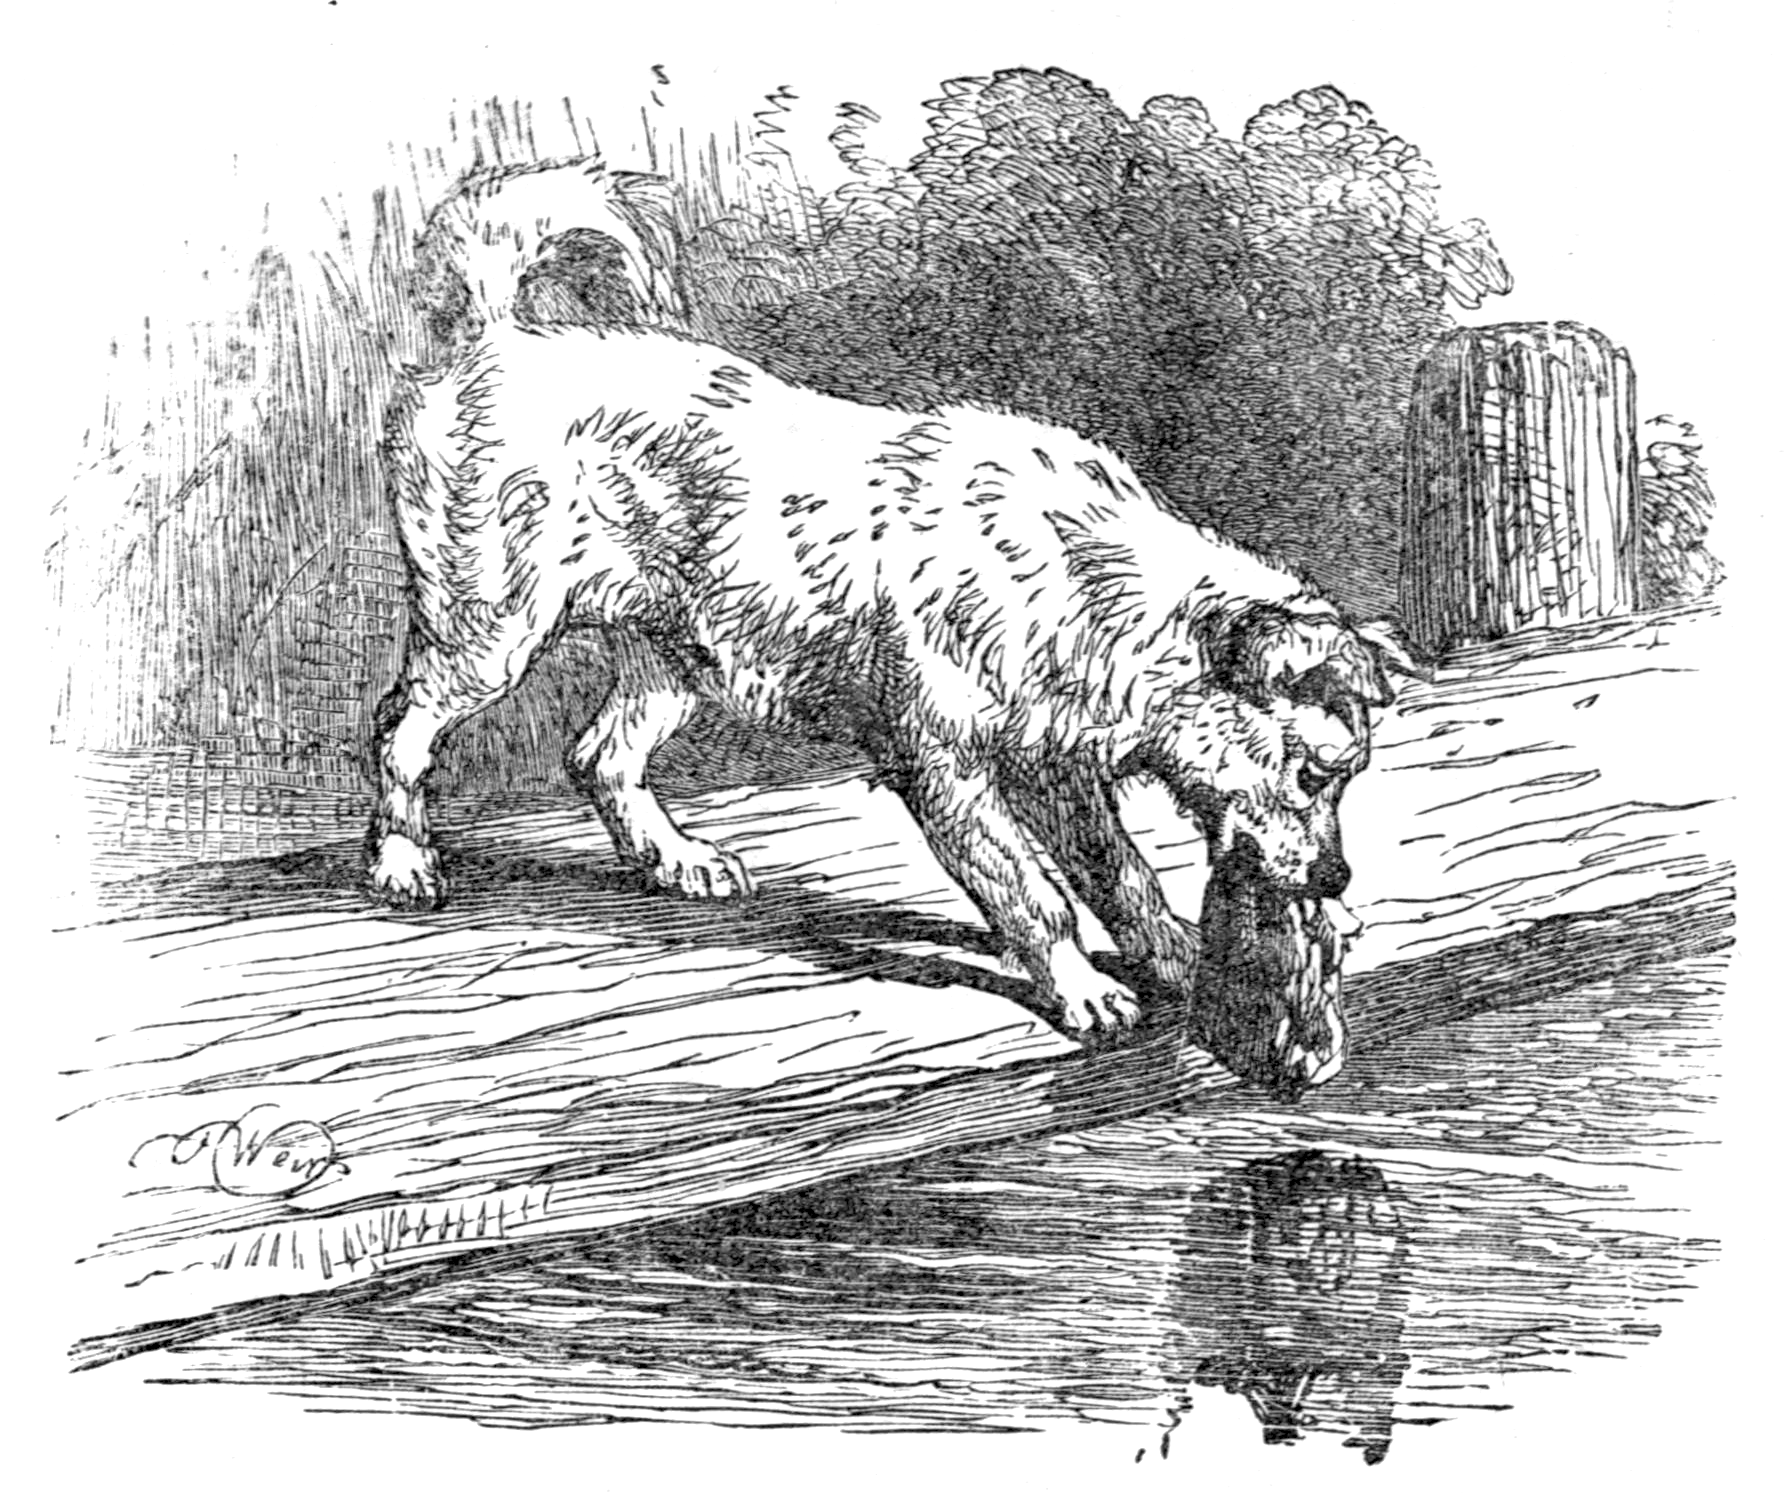 File:Page 39 illustration to Three hundred Aesopu0027s fables (Townsend).png - Fables PNG